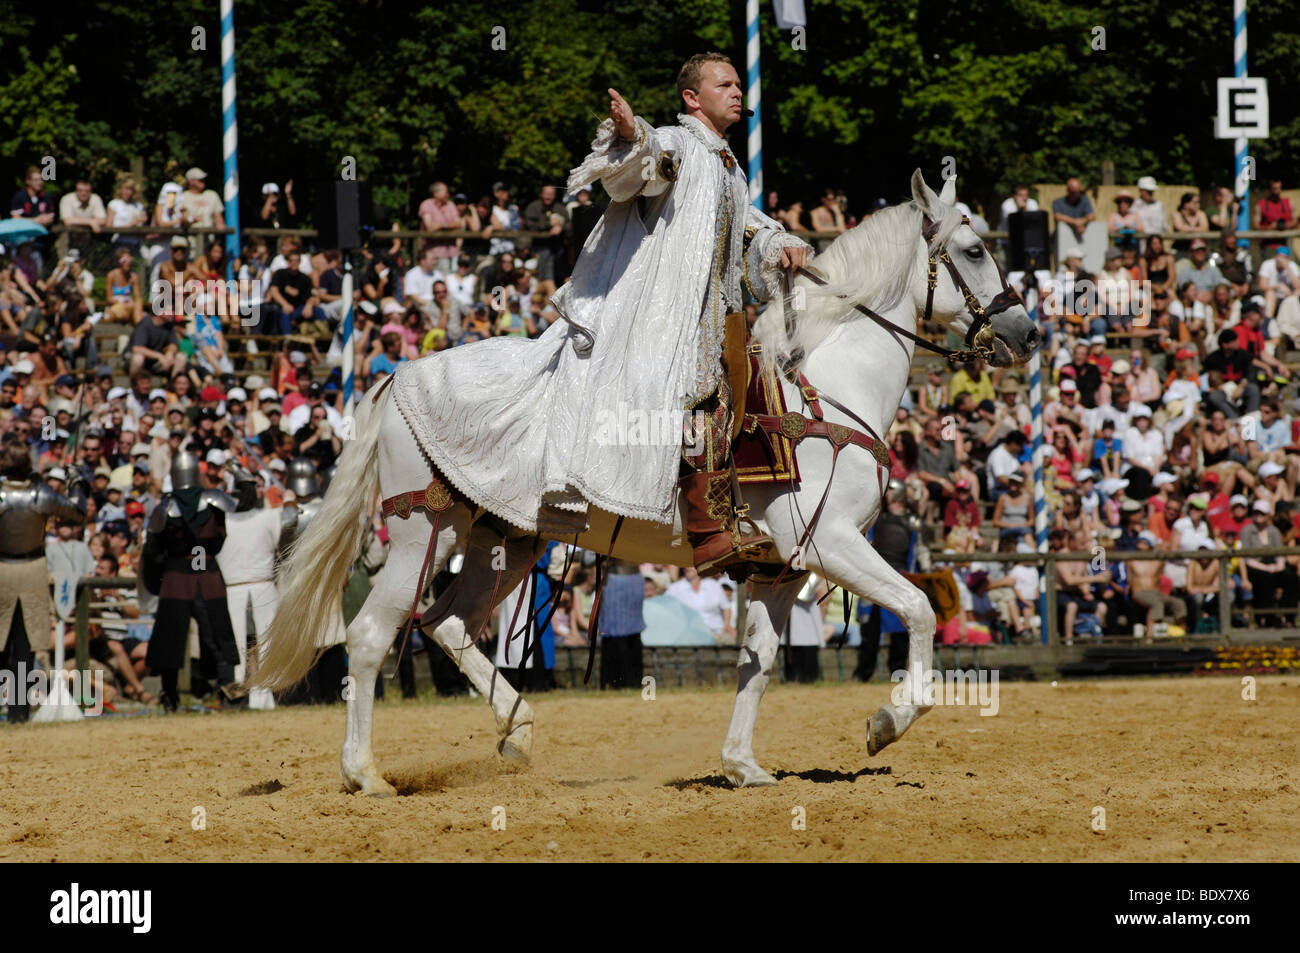 Roman Roell on a white horse, Knights' Tournament in Kaltenberg, Upper Bavaria, Bavaria, Germany, Europe - Stock Image